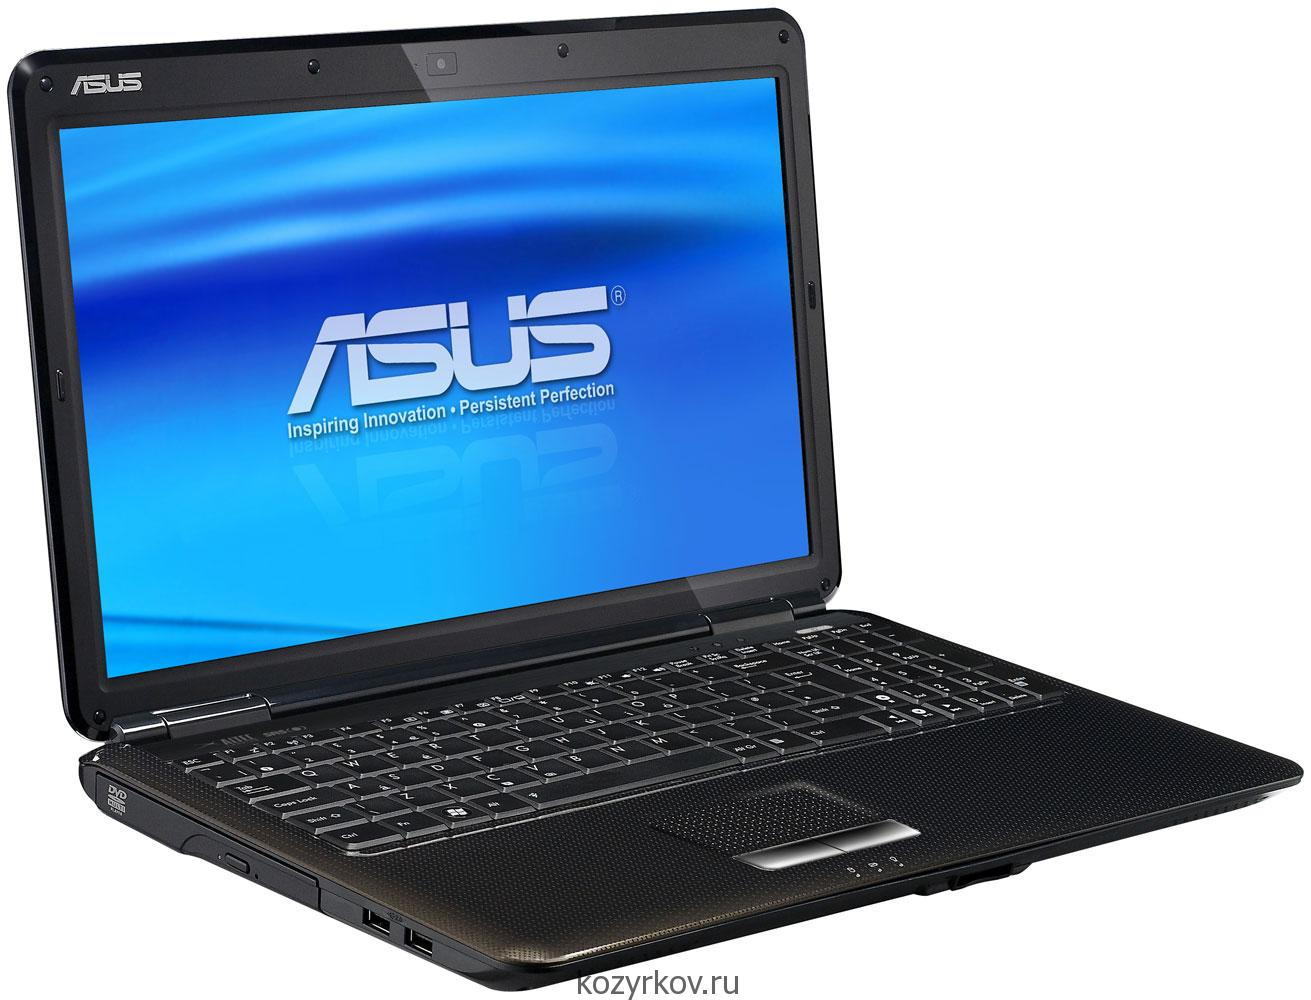 Download Driver: ASUS X550LB Keyboard Device Filter